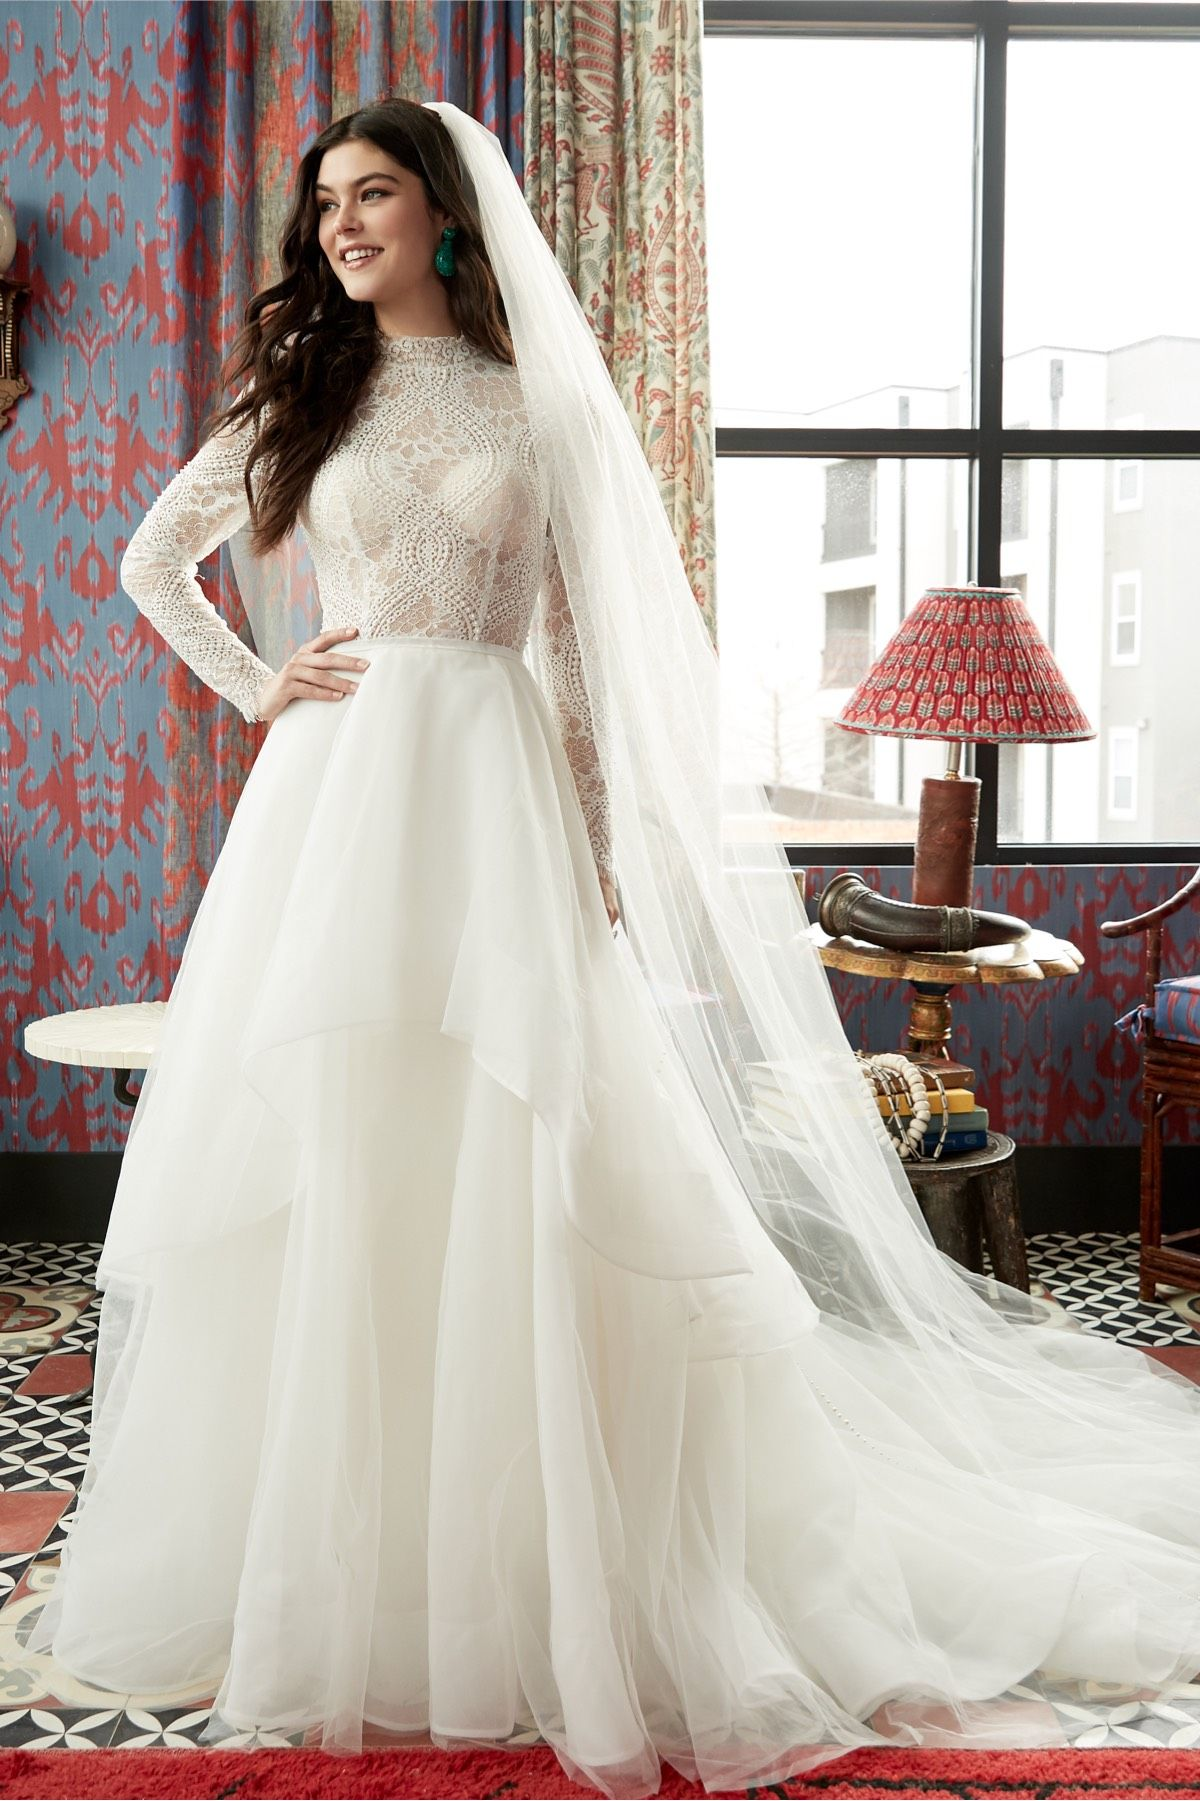 Oh So Chic And Ready For The Altar This Graphic Lace Is Crafted Into A Classic Bridal Look Wtoo Wedding Dress Wedding Dress Long Sleeve Designer Bridal Gowns [ 1801 x 1200 Pixel ]